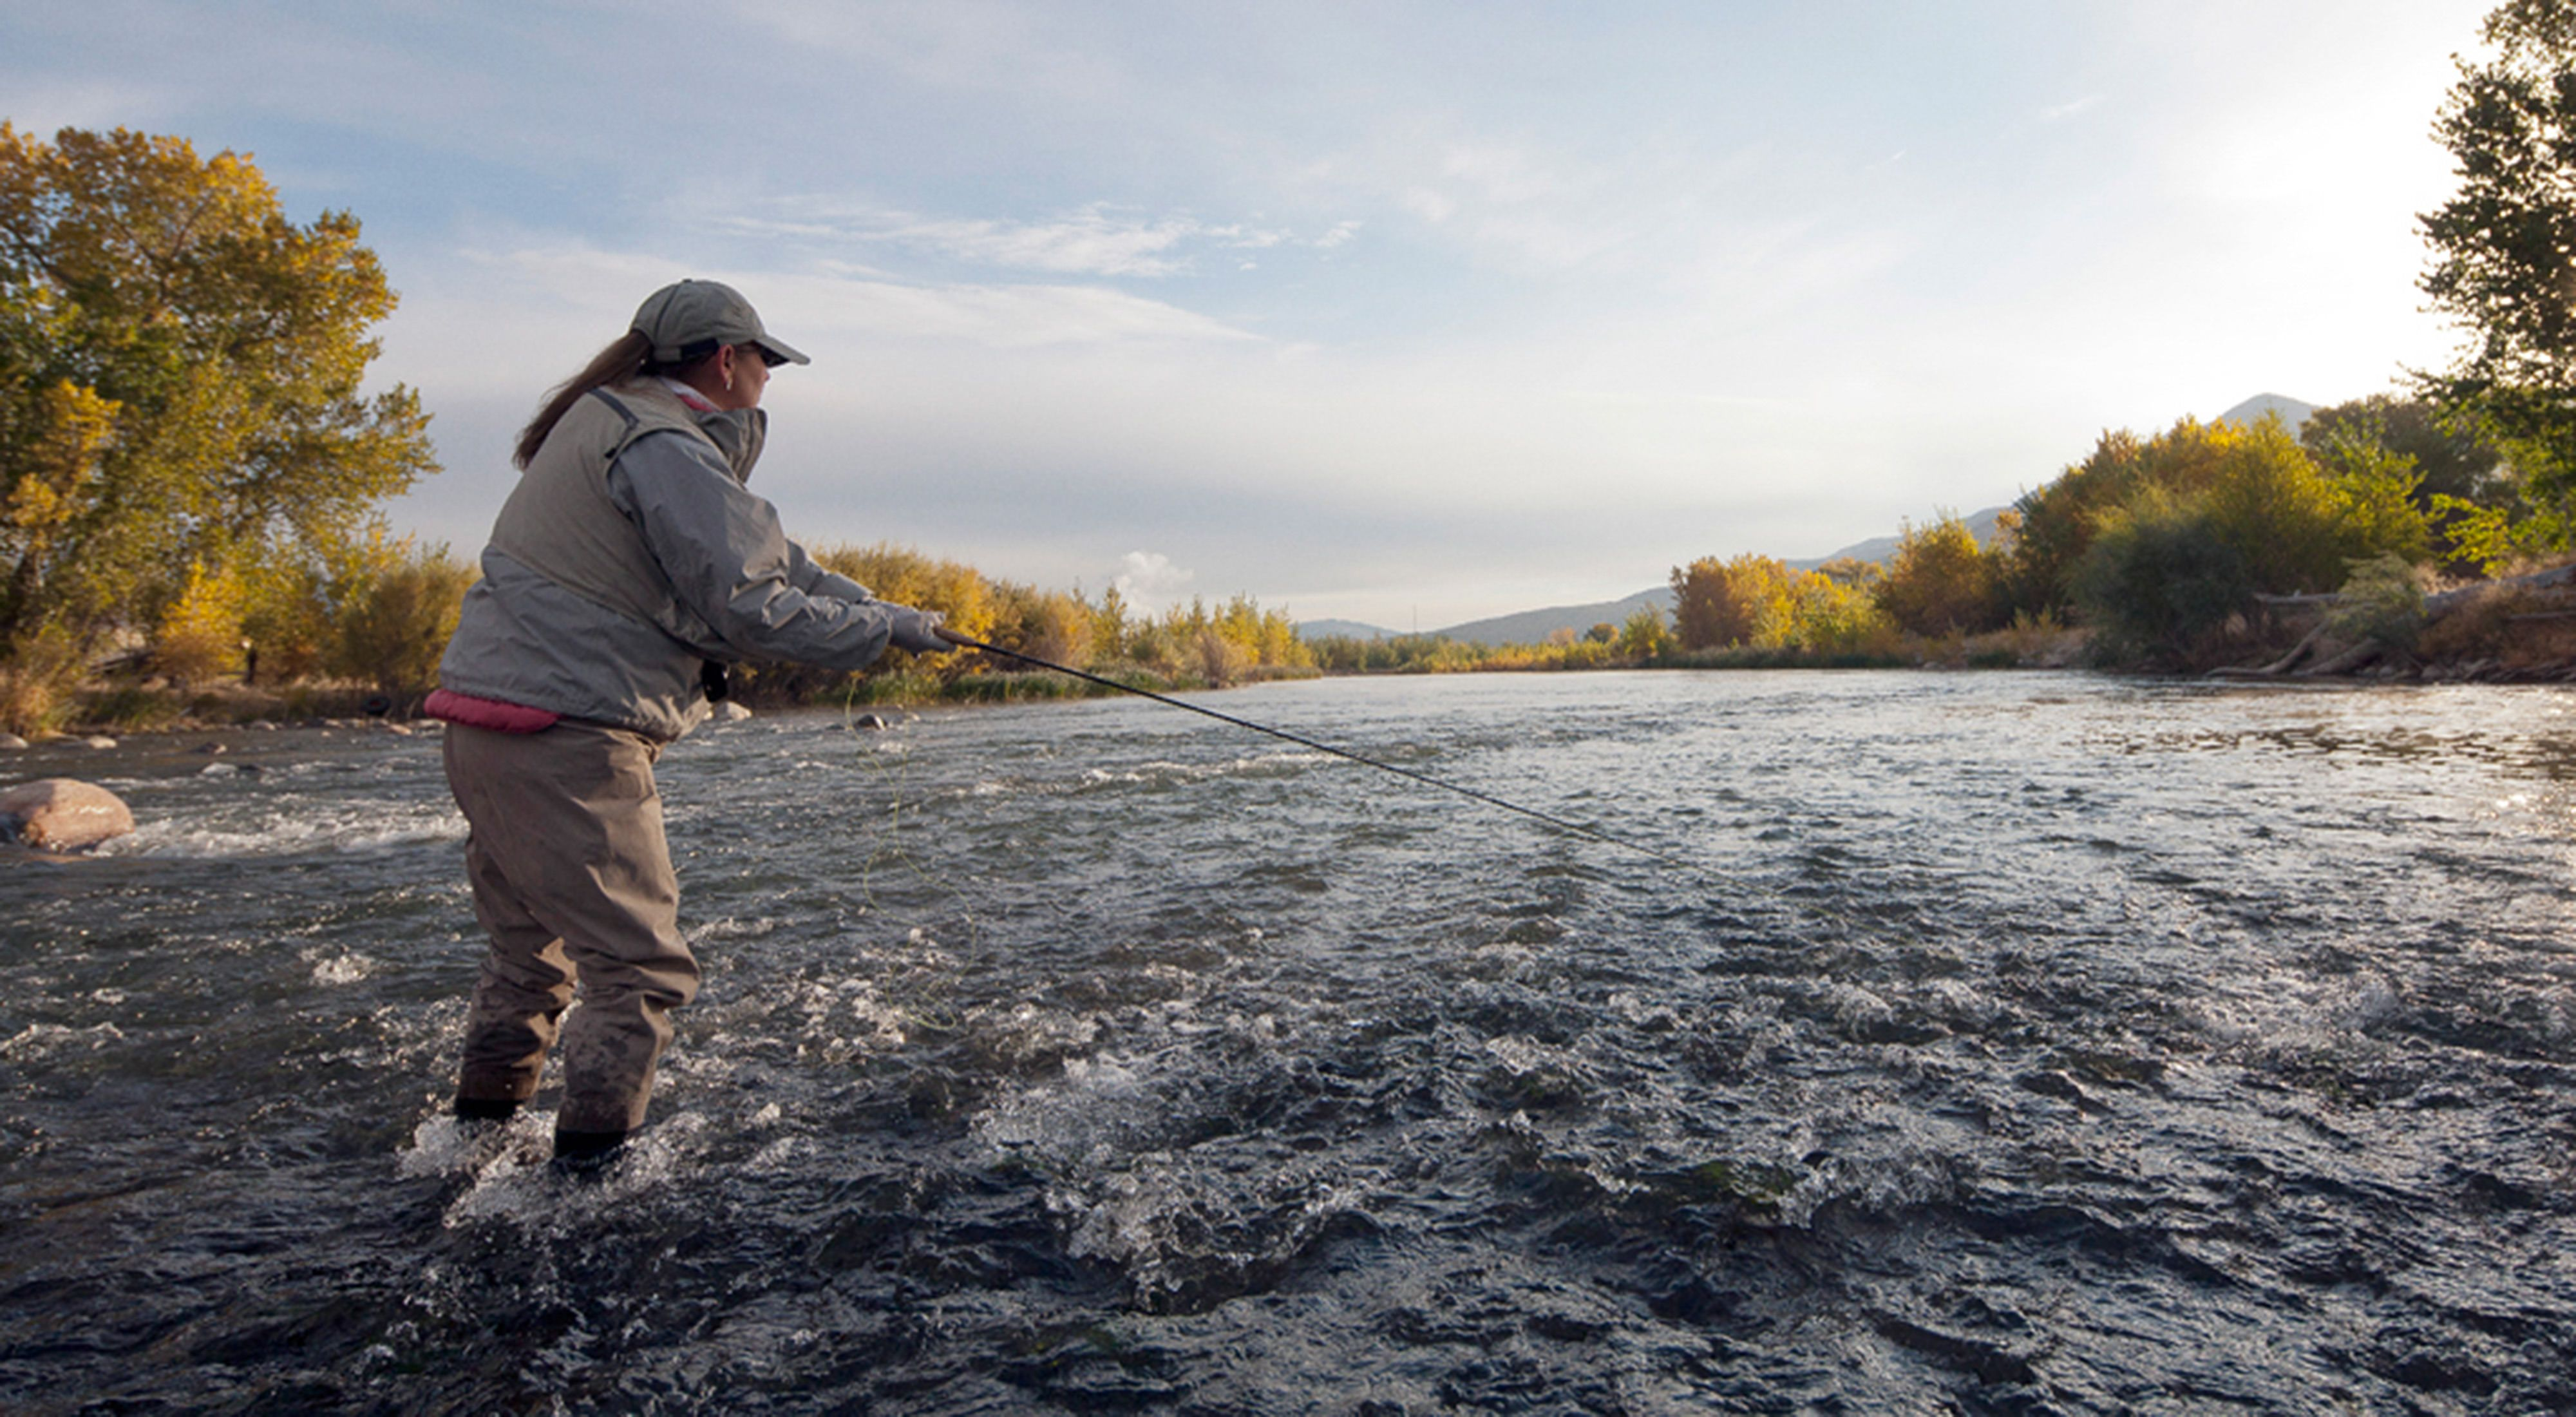 Flyfishing at McCarran Ranch Preserve on the Truckee River near Reno, NV